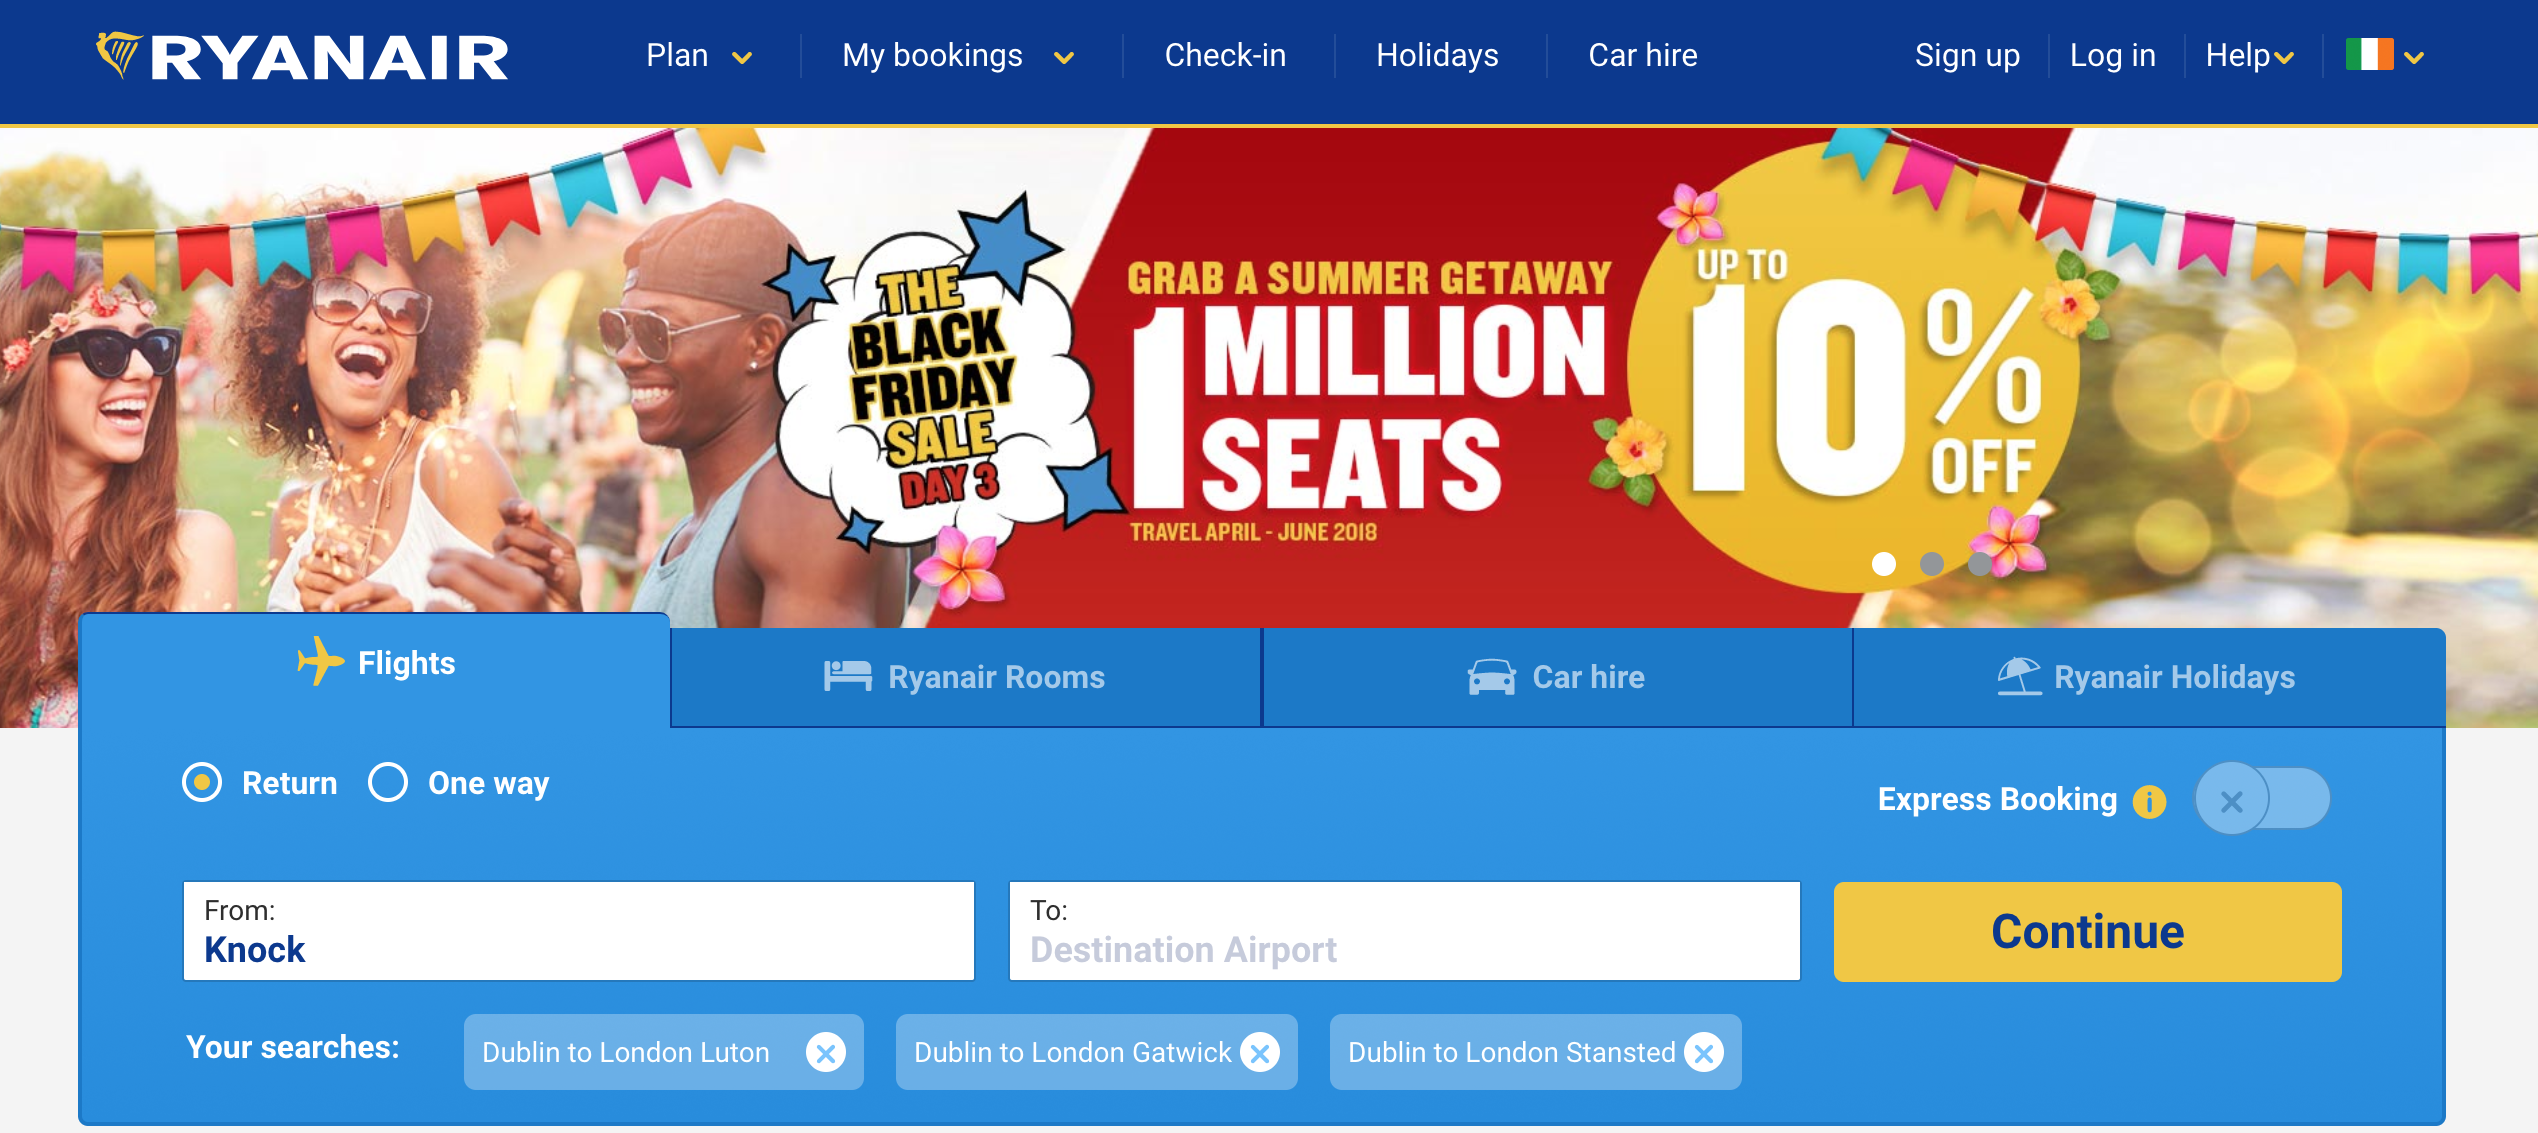 RyanAir Black Friday sale promotion